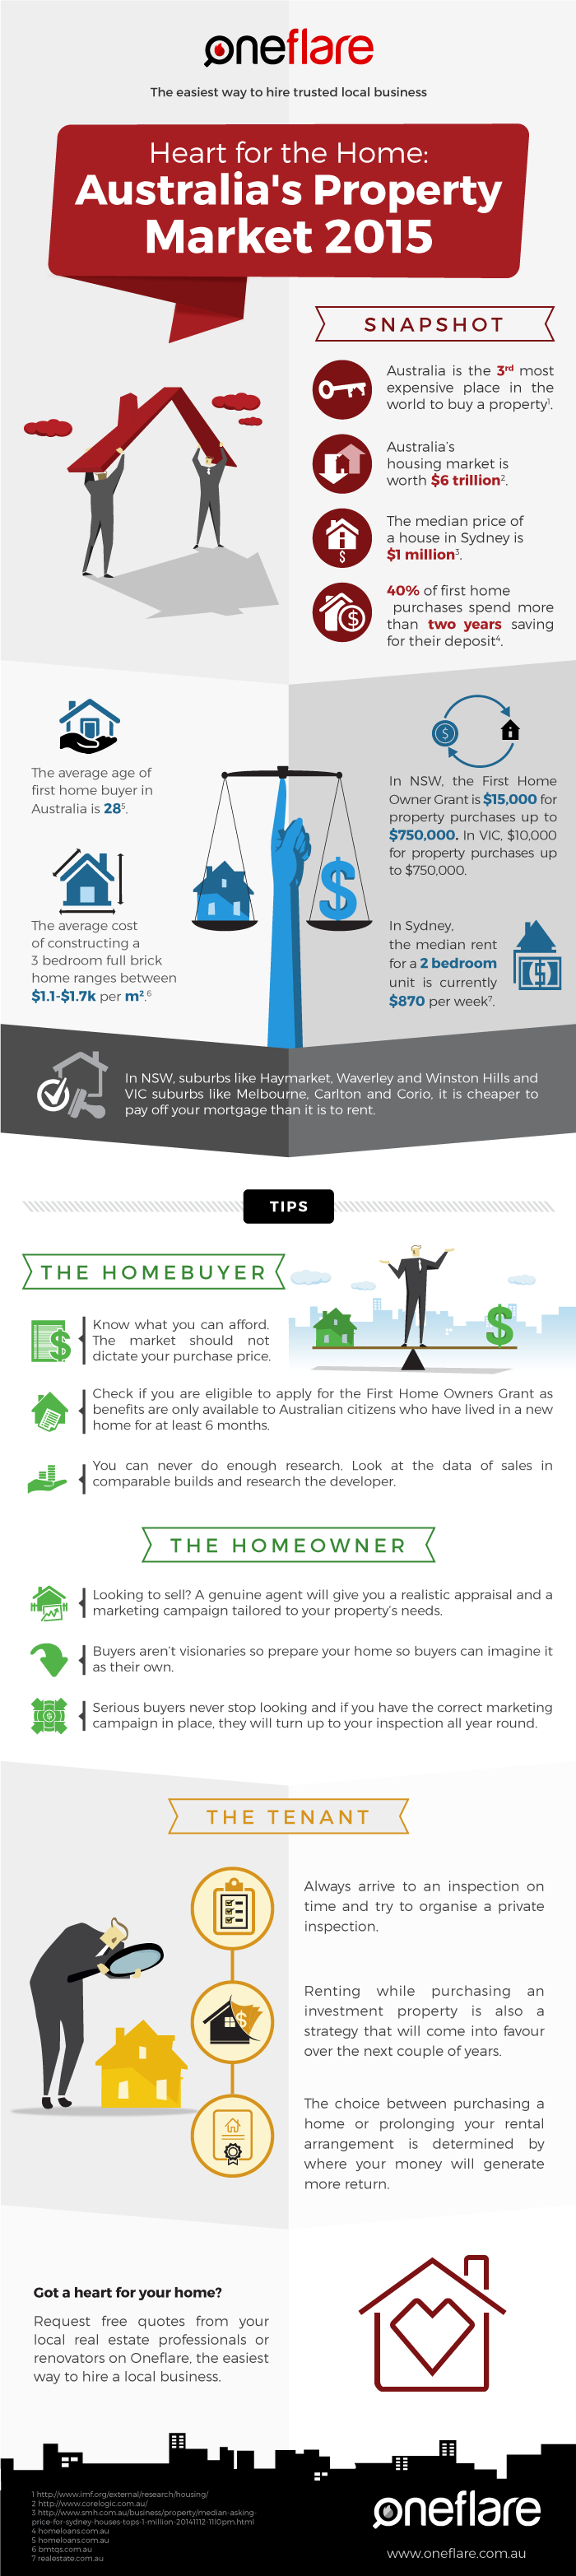 Heart-for-the-Home-Infographic